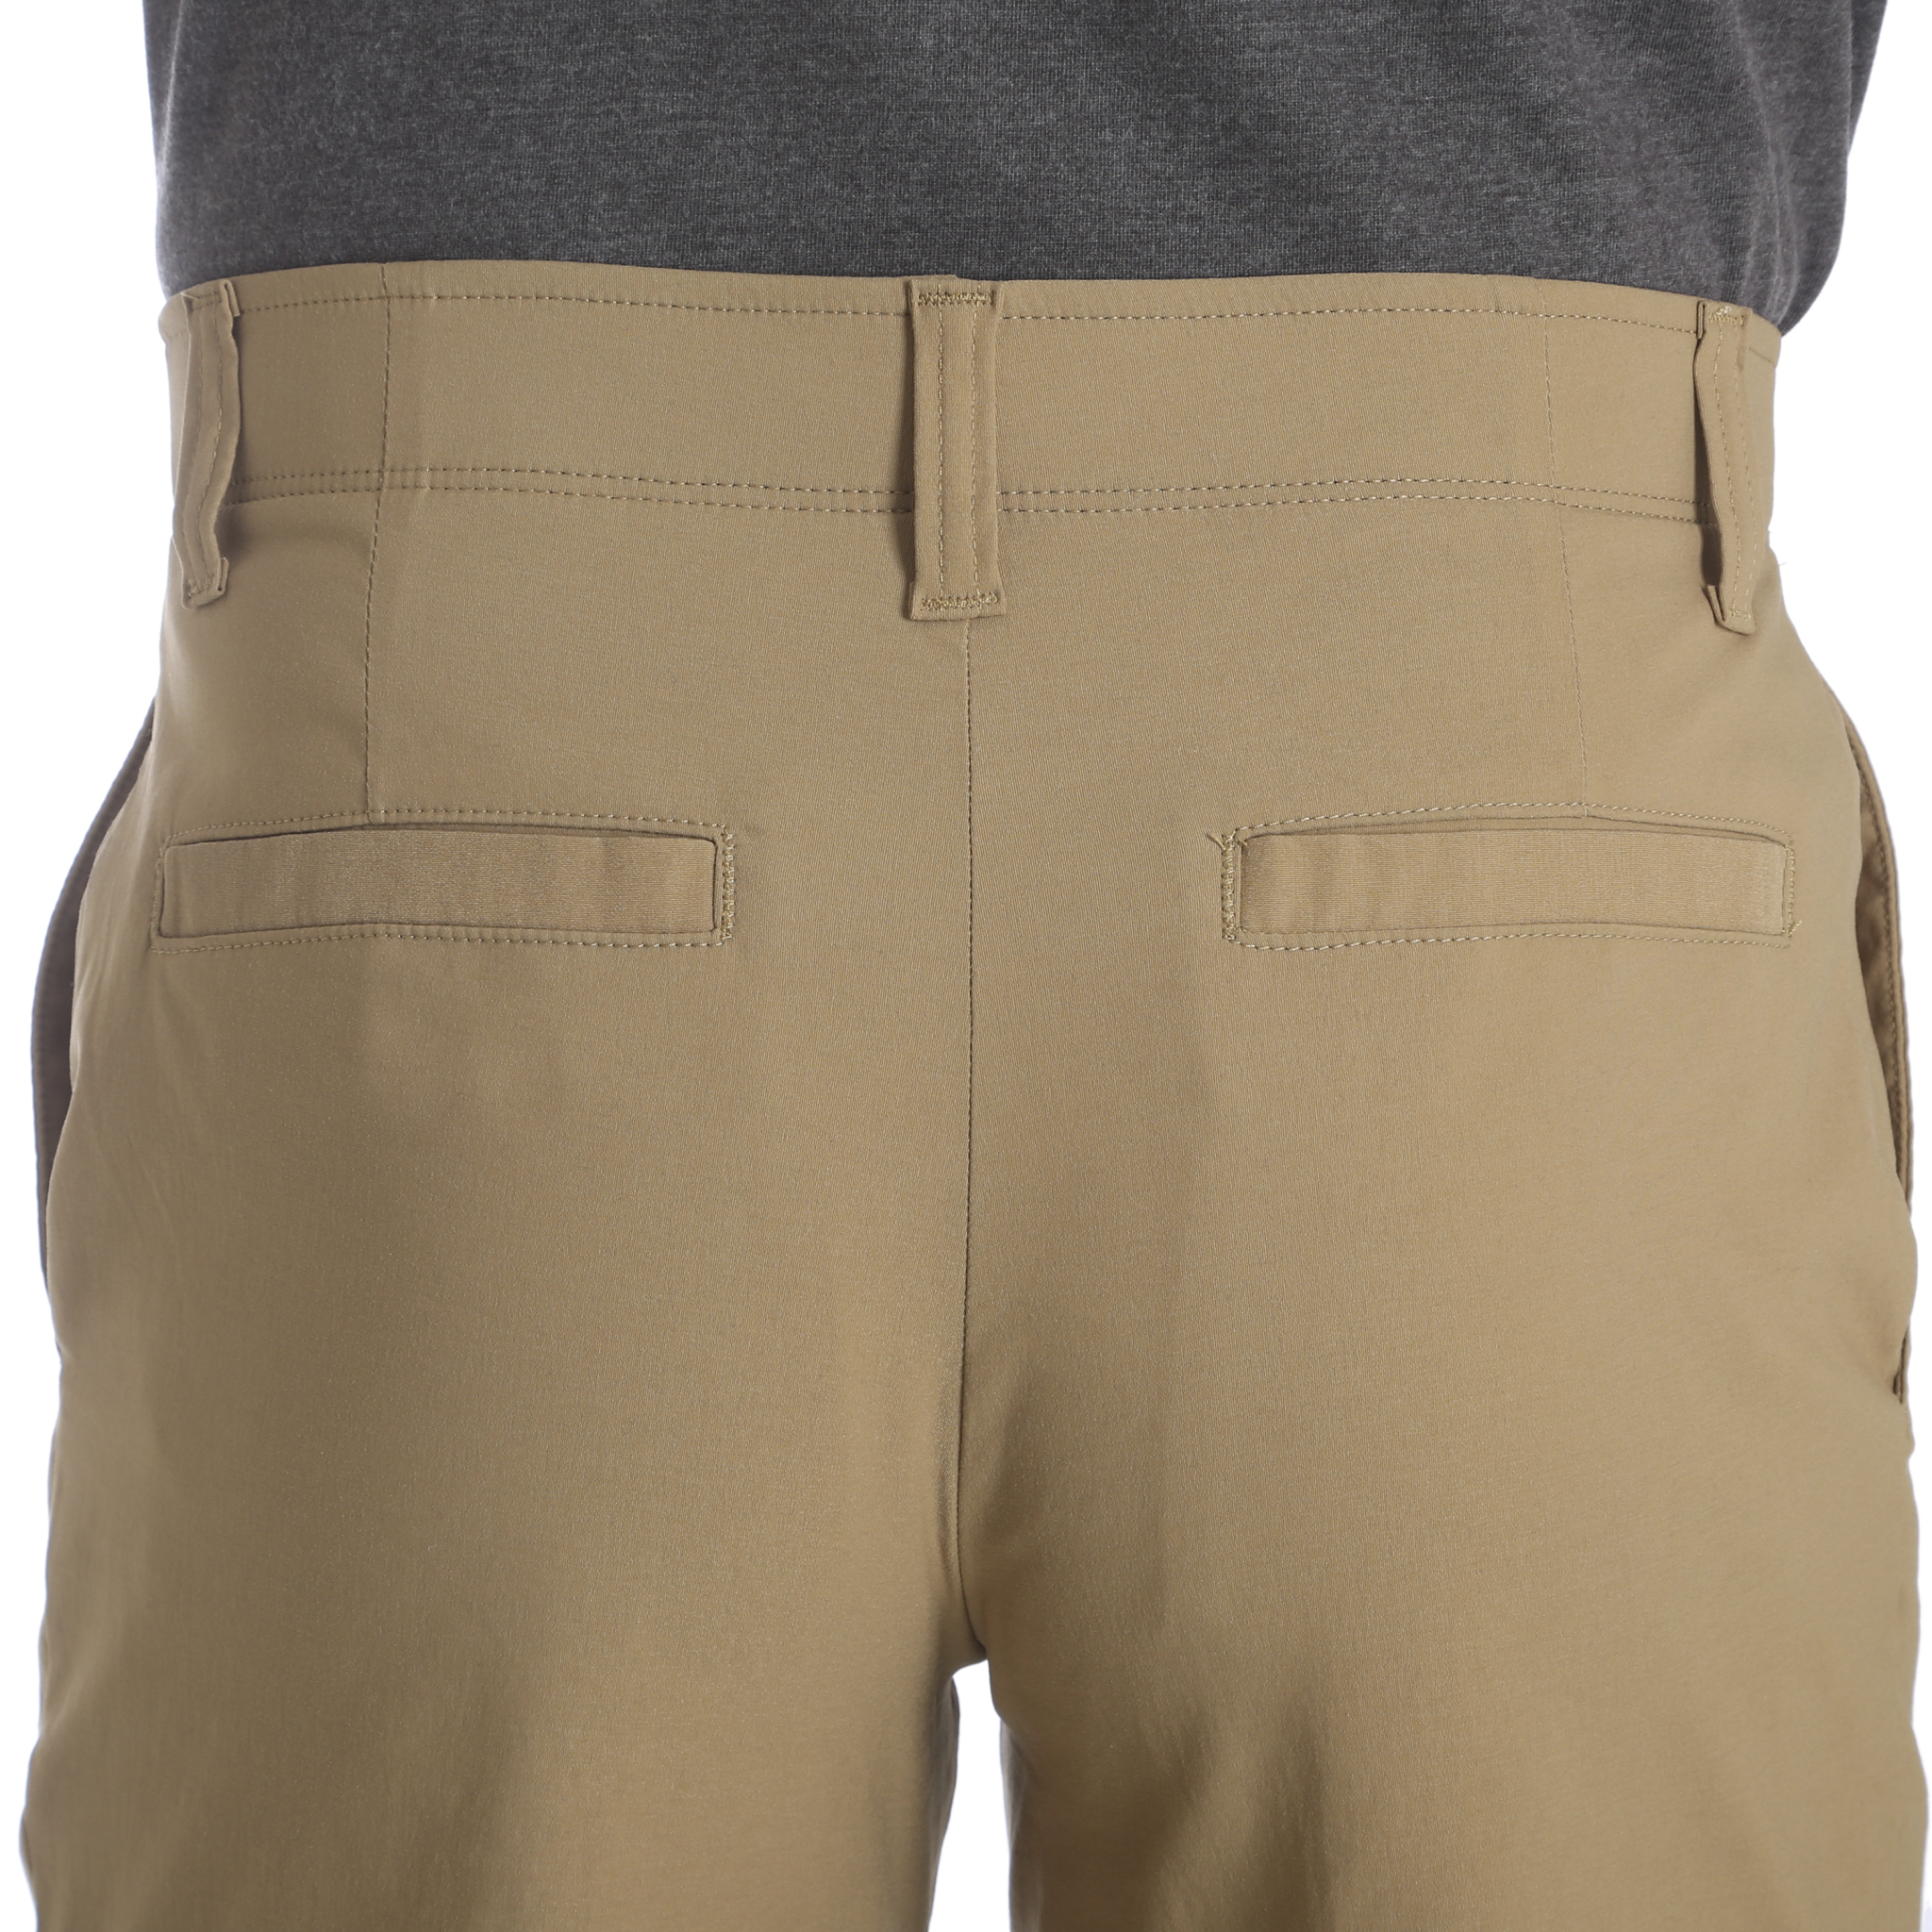 Wrangler-Neuf-Solide-Homme-Performance-Series-Outdoor-Confort-Coupe-Droite-Pantalon miniature 4